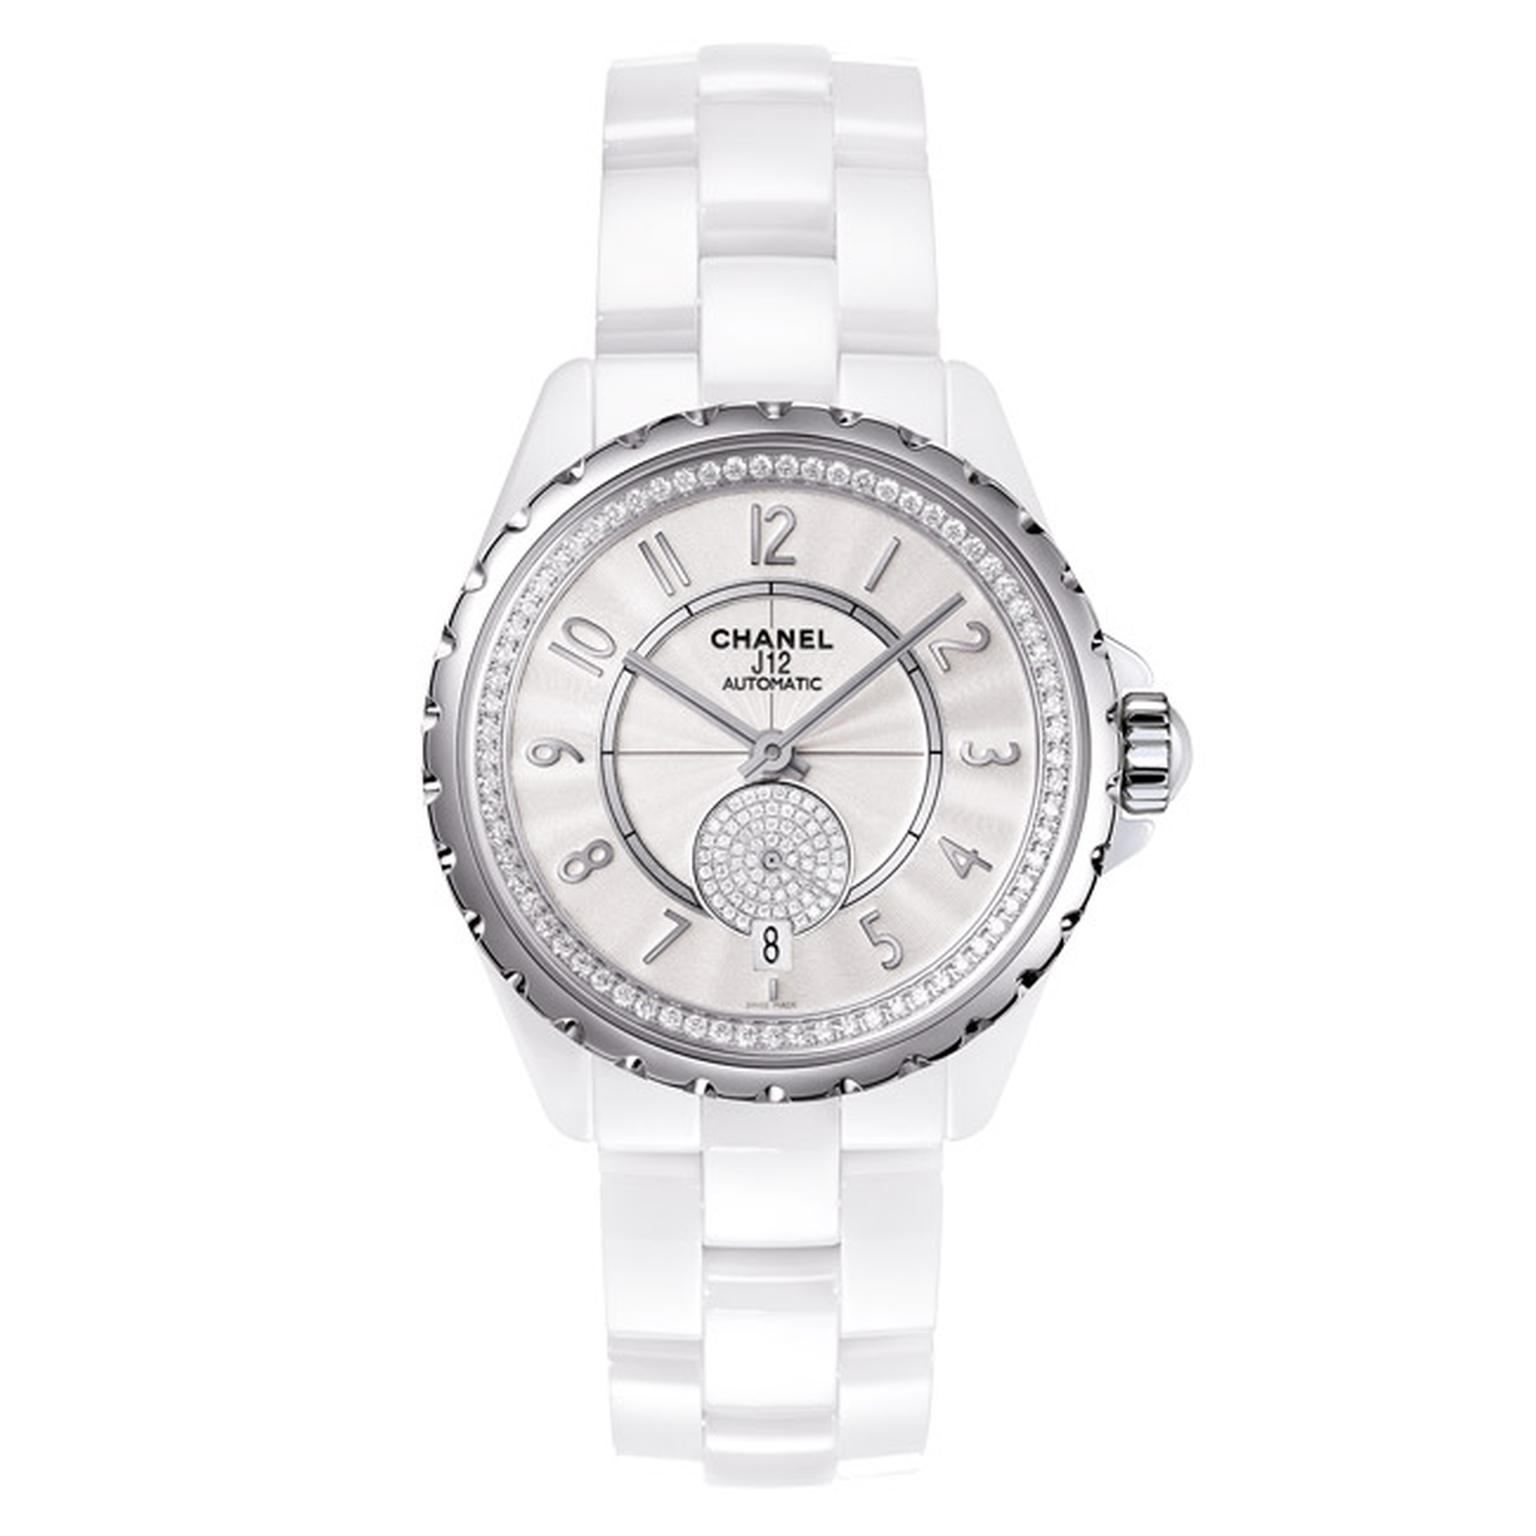 Chanel-J12-white-Diamond-main